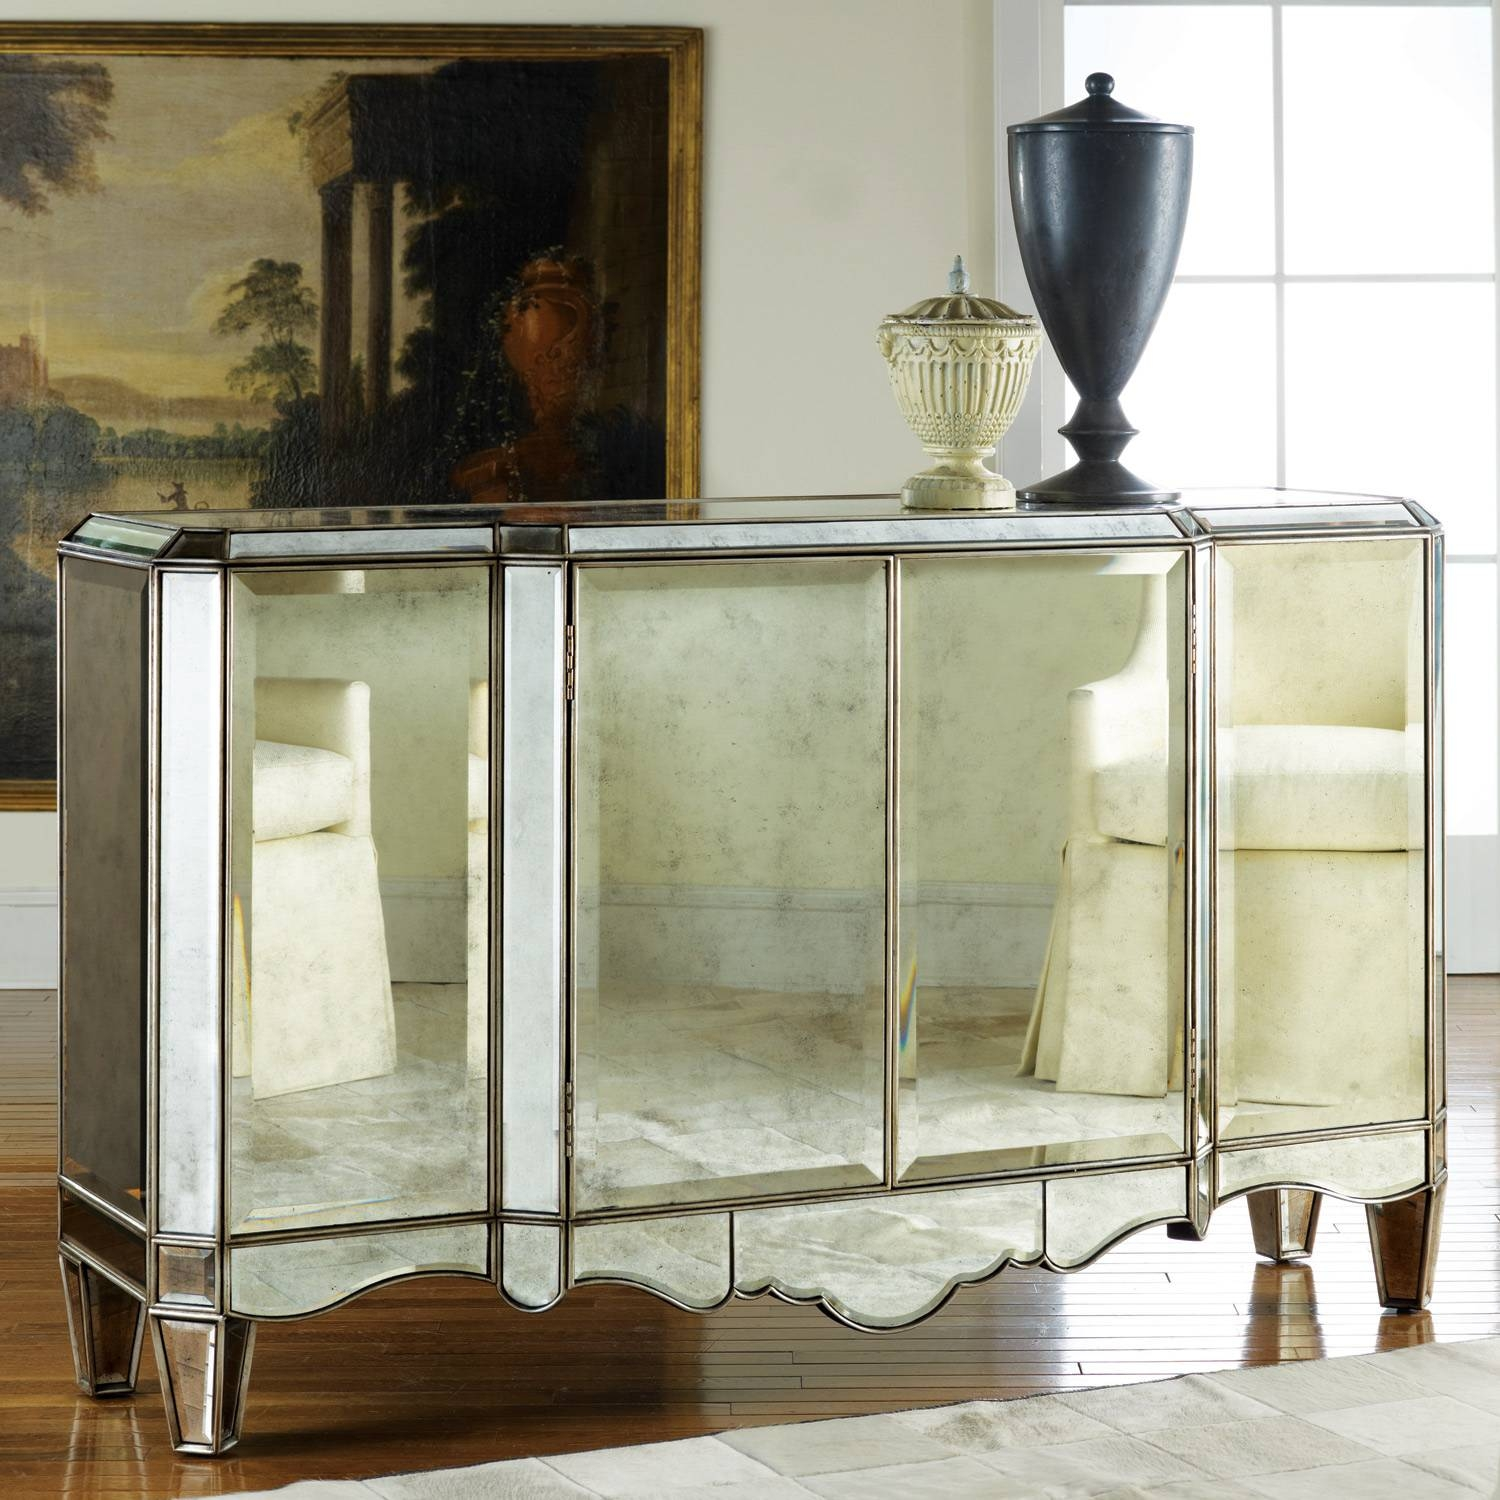 Modern History Home Mirrored Sideboard Within Most Popular Mirror Sideboards (View 5 of 15)